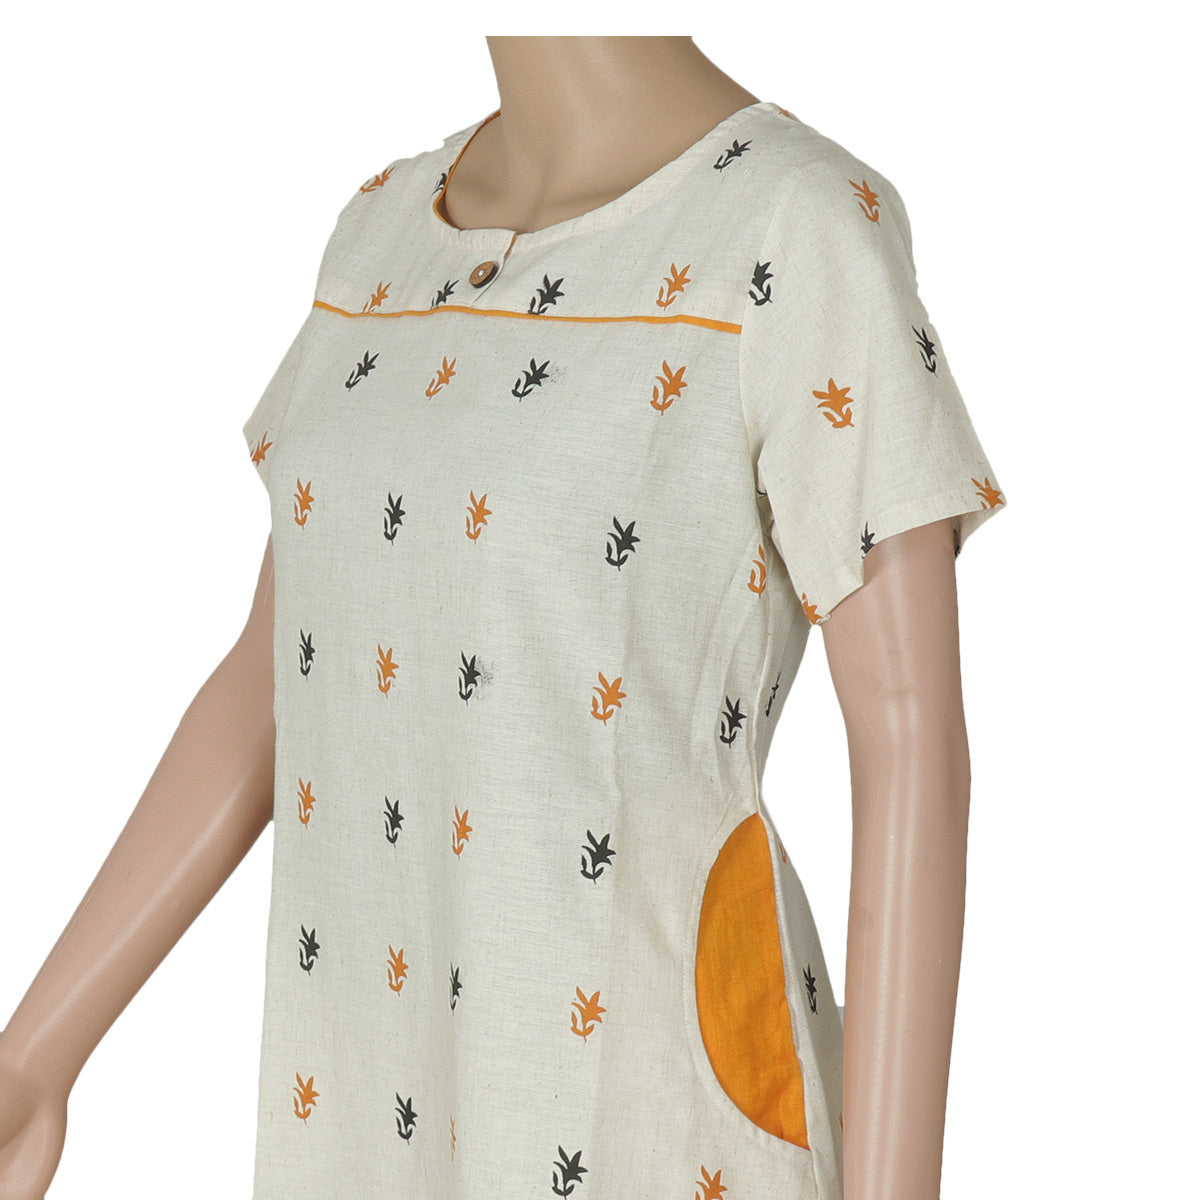 Cotton Kurta Off white and Mustard with leaf design